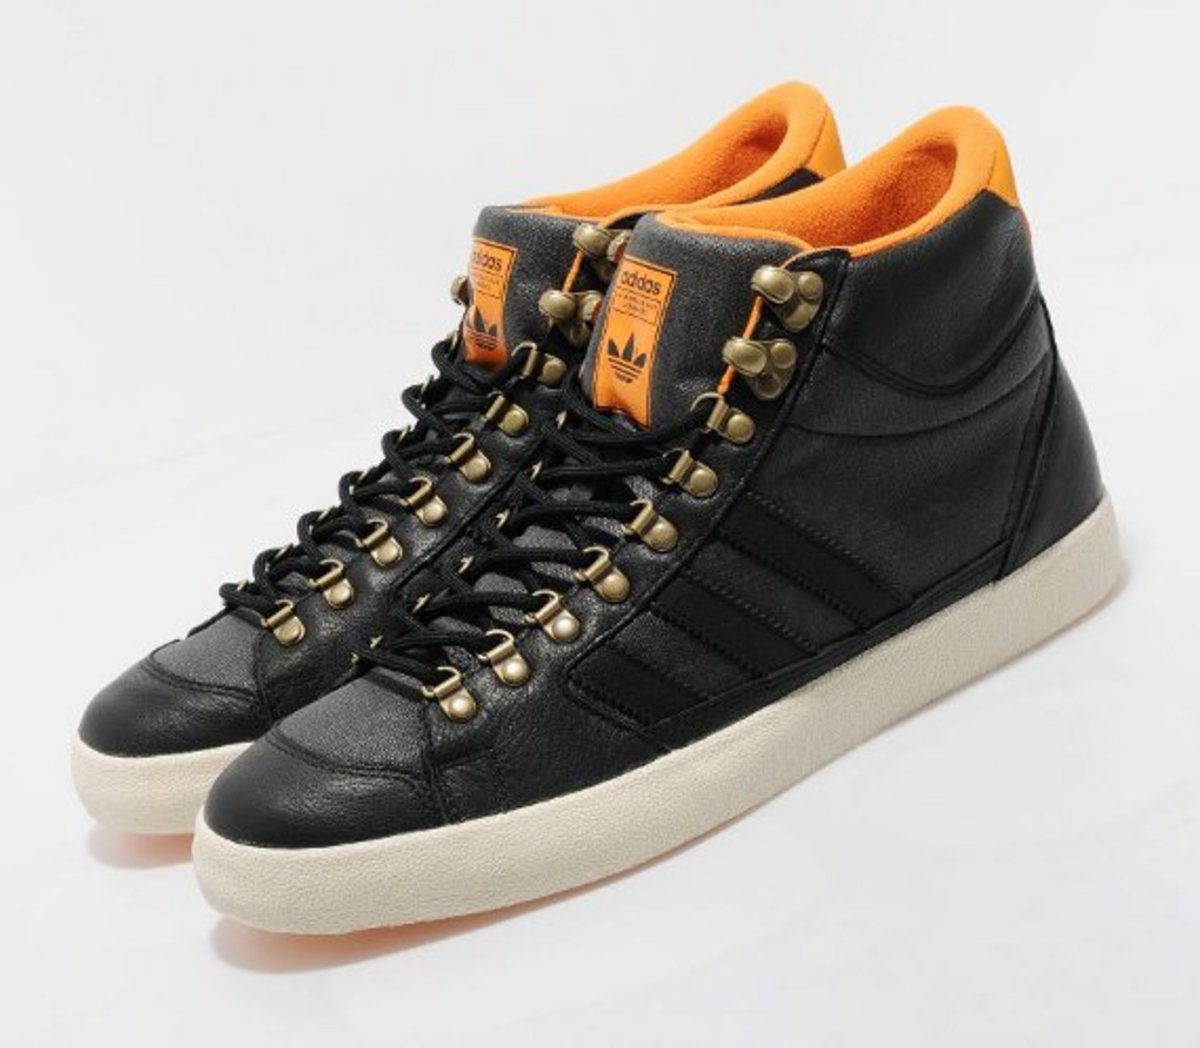 adidas-winter-size-pack-06